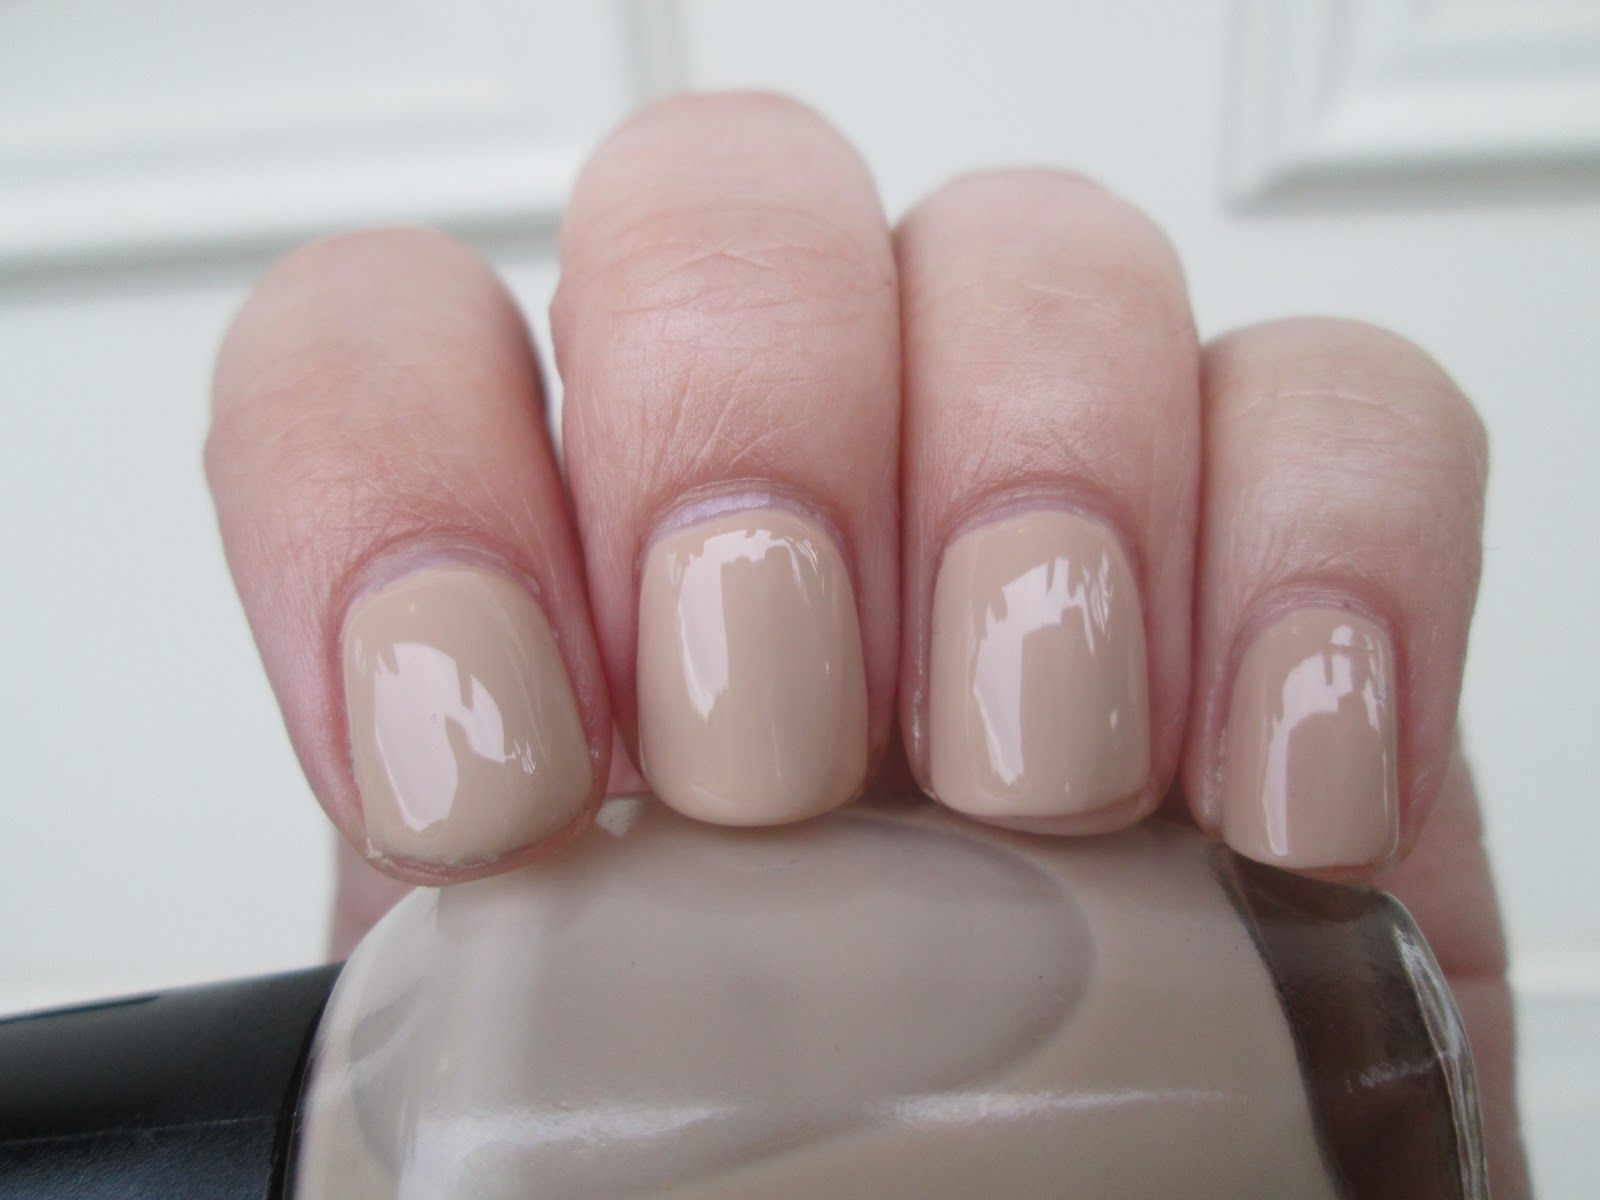 Sally Hansen Insta-Dry - Sand Storm | My Nail Polishes | Pinterest